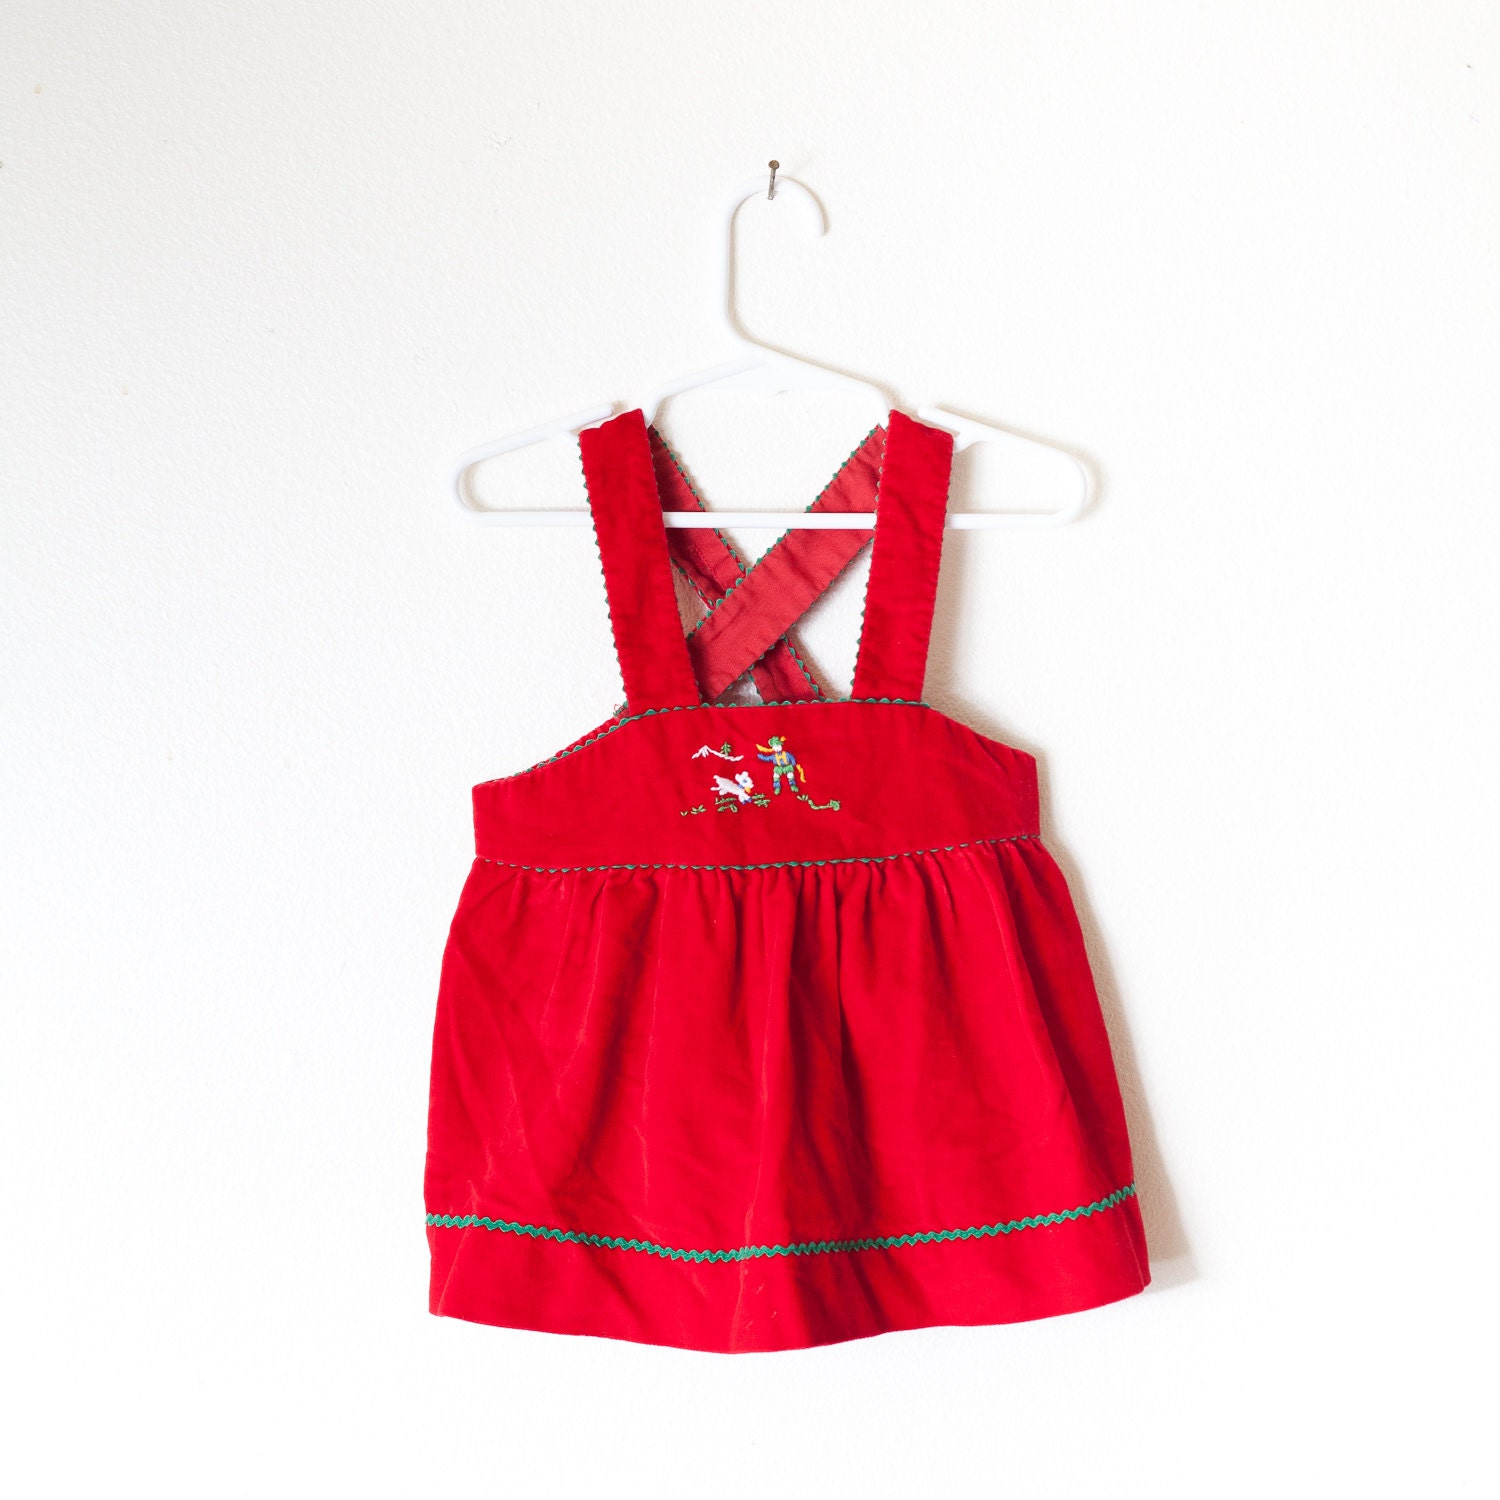 Biscotti Dresses has done an amazing collection for this Season. As always, Biscotti Dresses is girls' fashion at its very best! Biscotti Dresses are selling fast, so do not delay in placing your order.